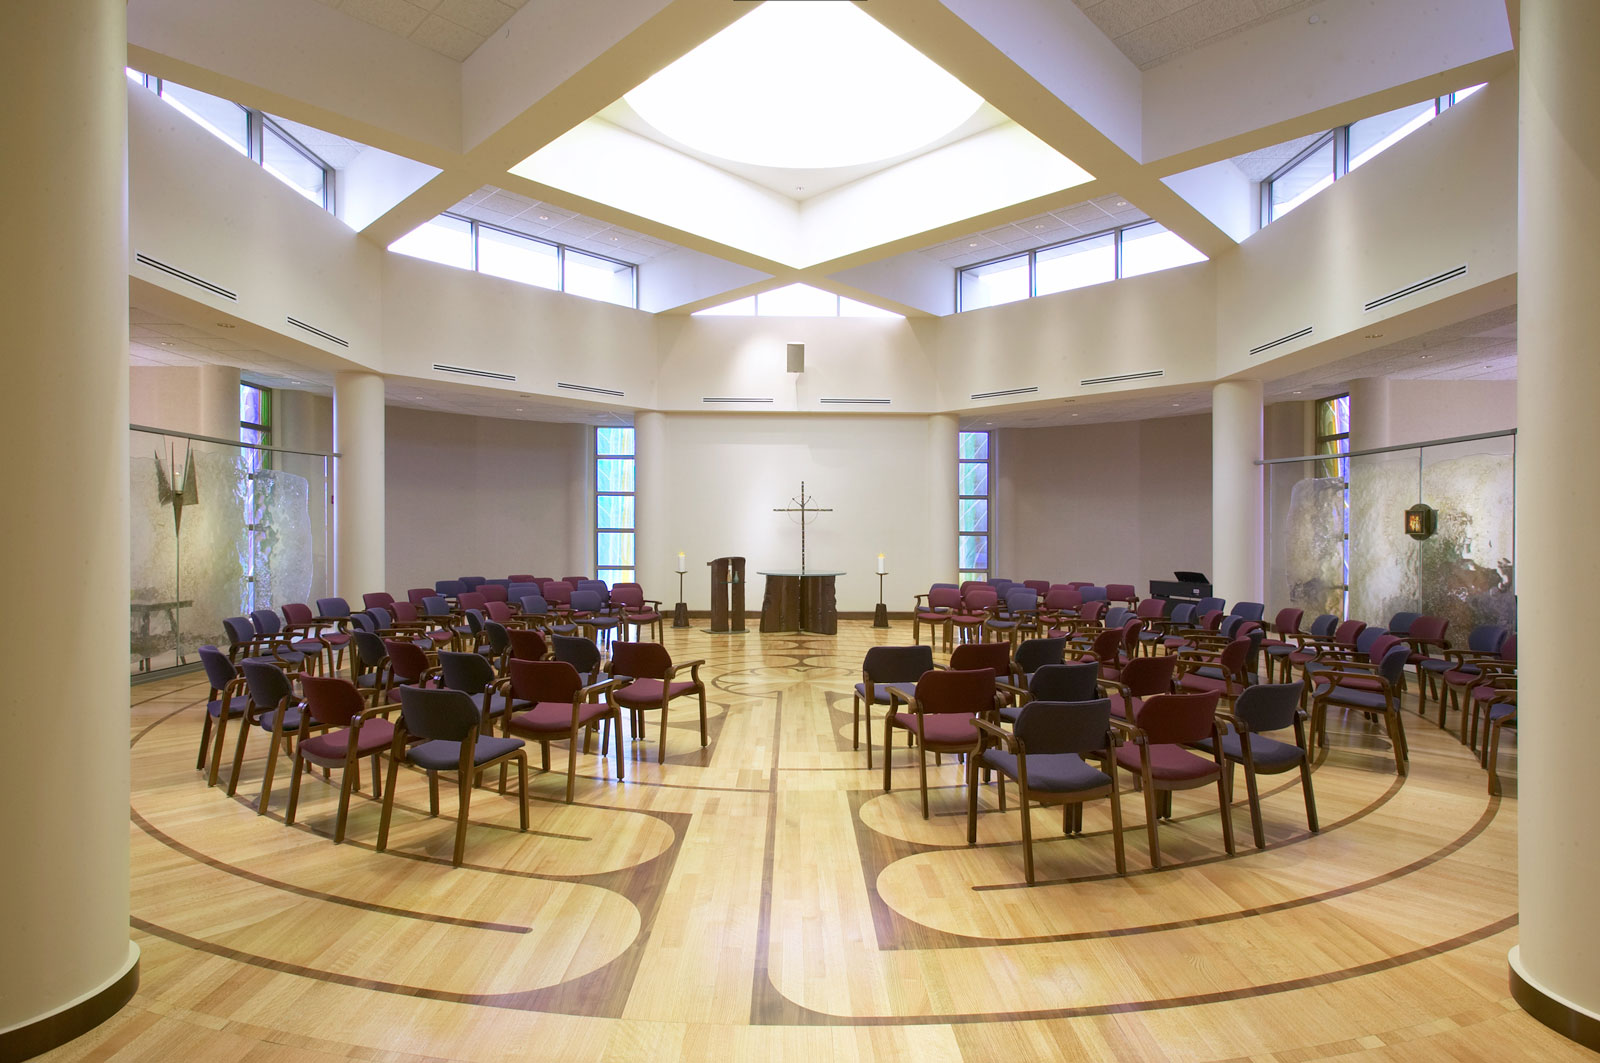 Large open room with standing chairs arranged in rows, They're centered around and facing the center podium